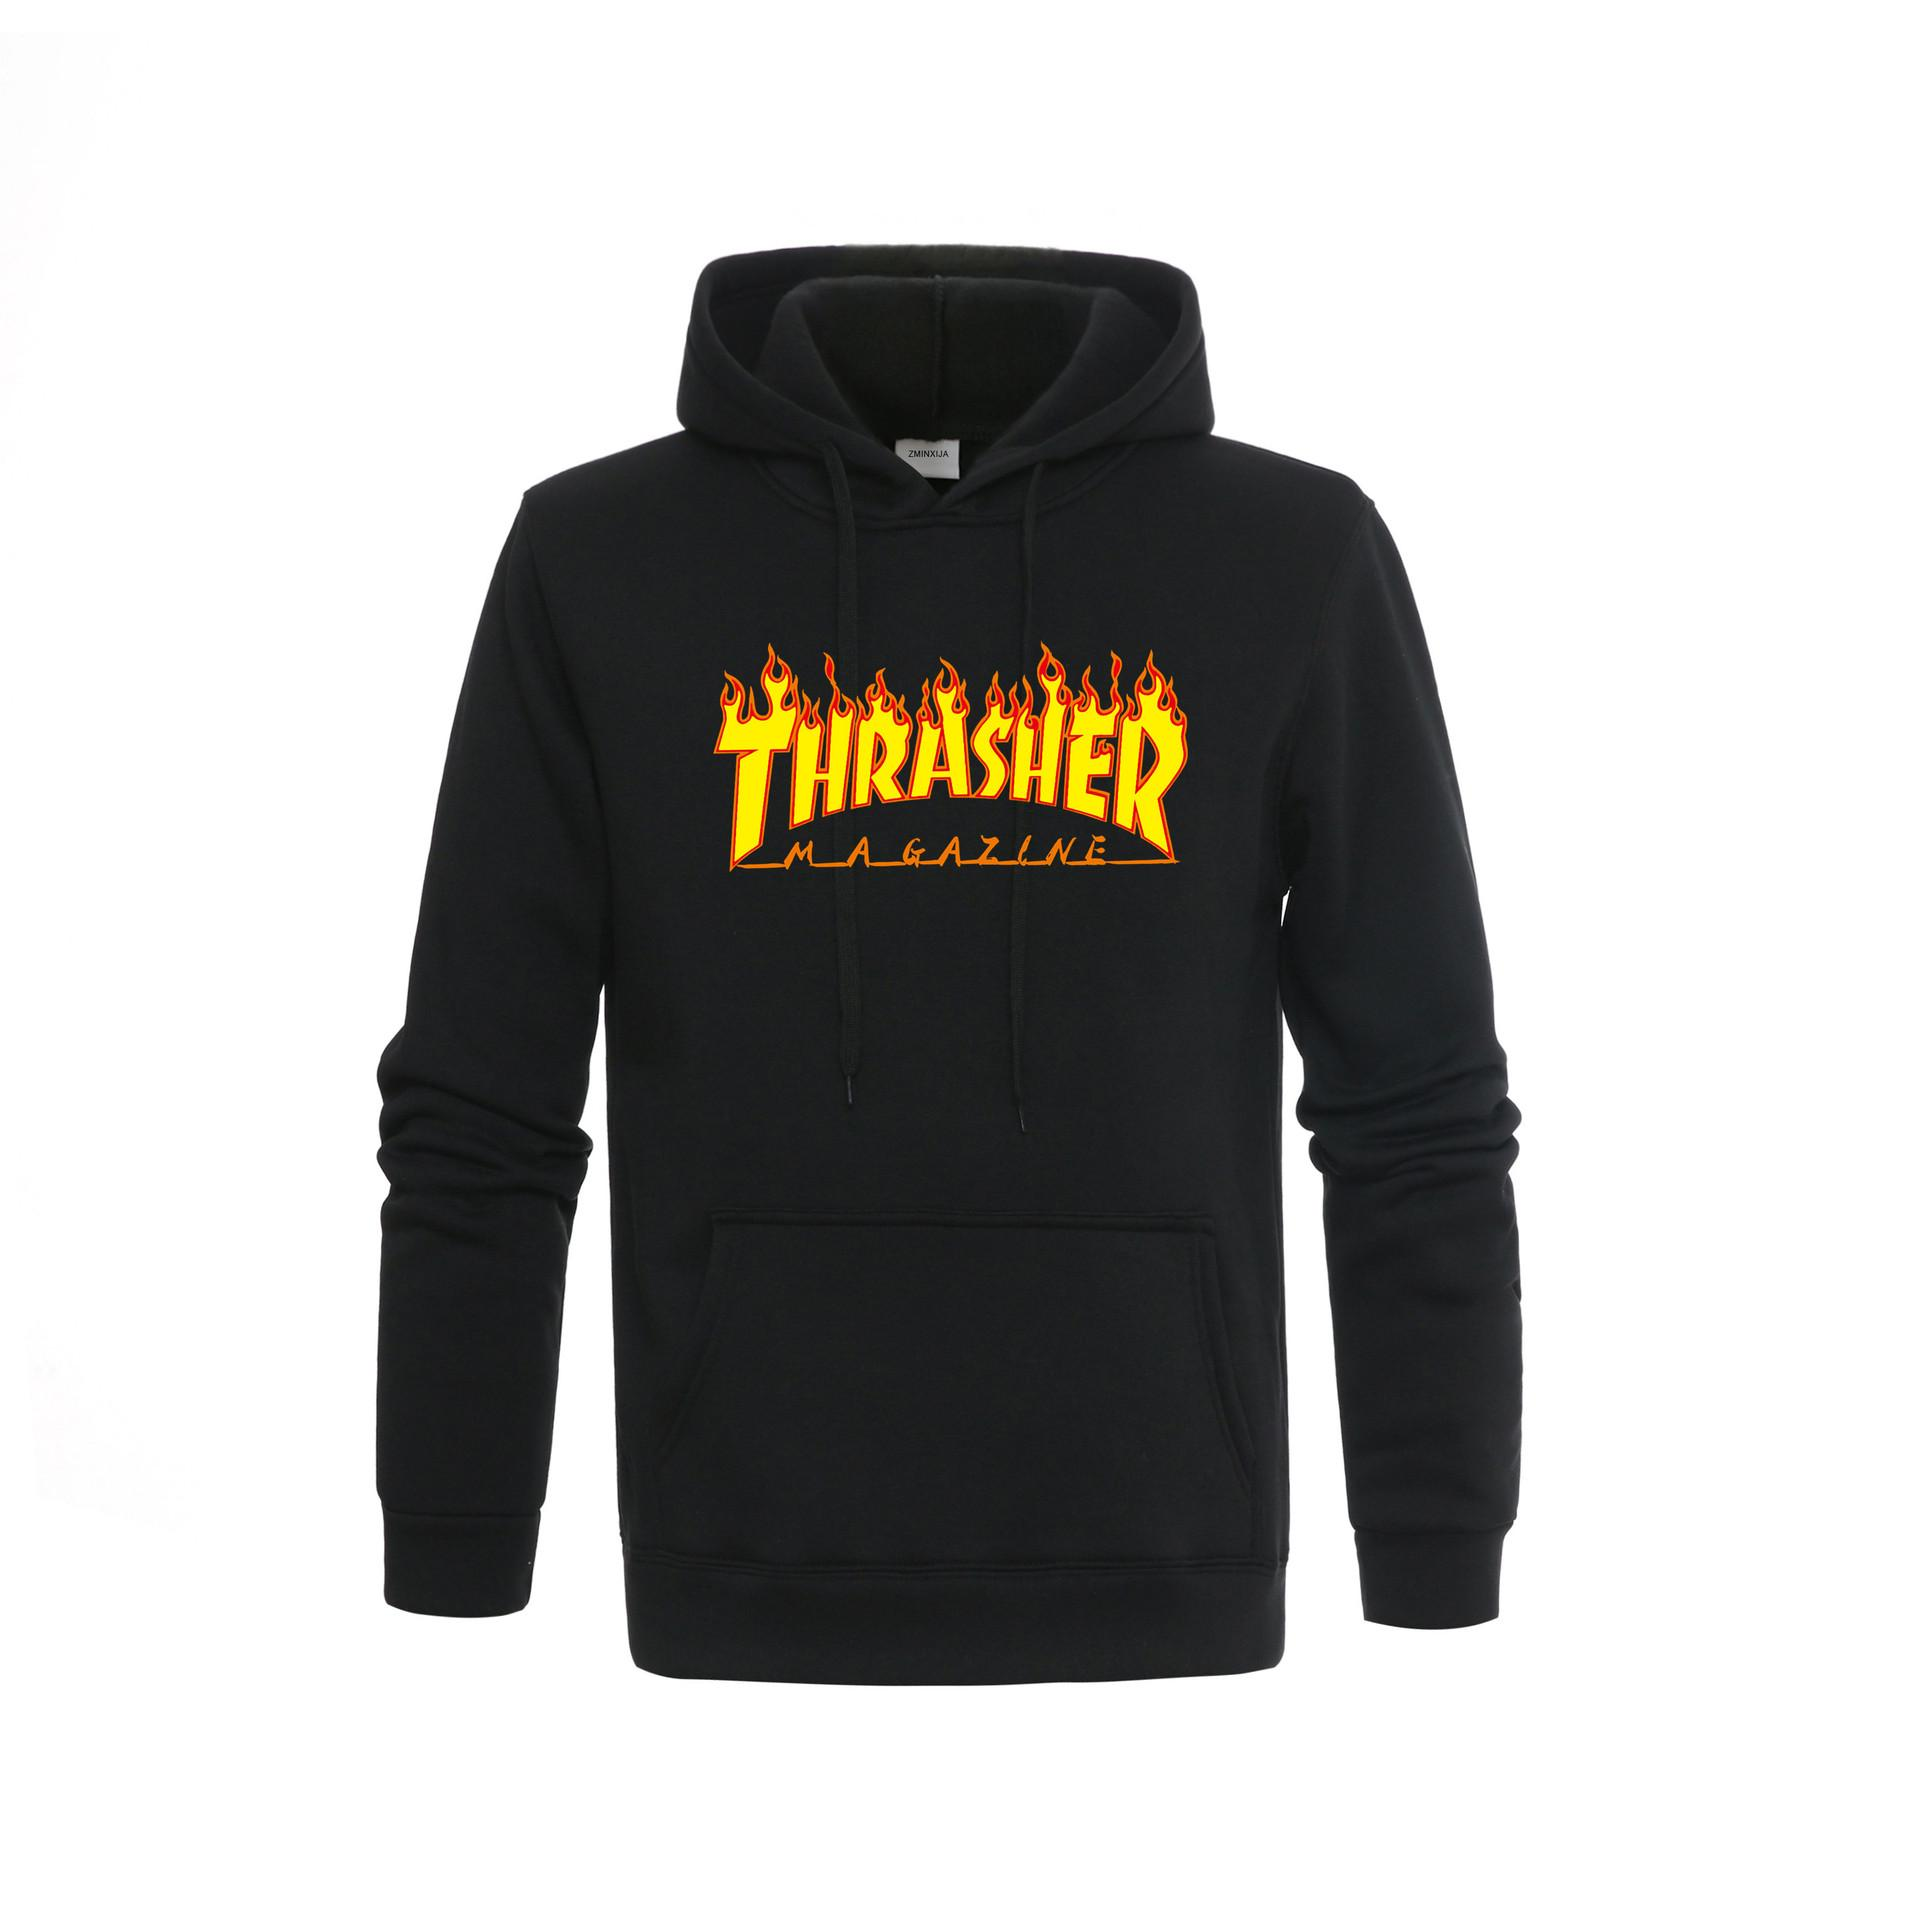 Fall And Winter 2019 New Leisure Pullover Men's Hoodie Pure Printed THRASHER Brand Flame Men's Guard S